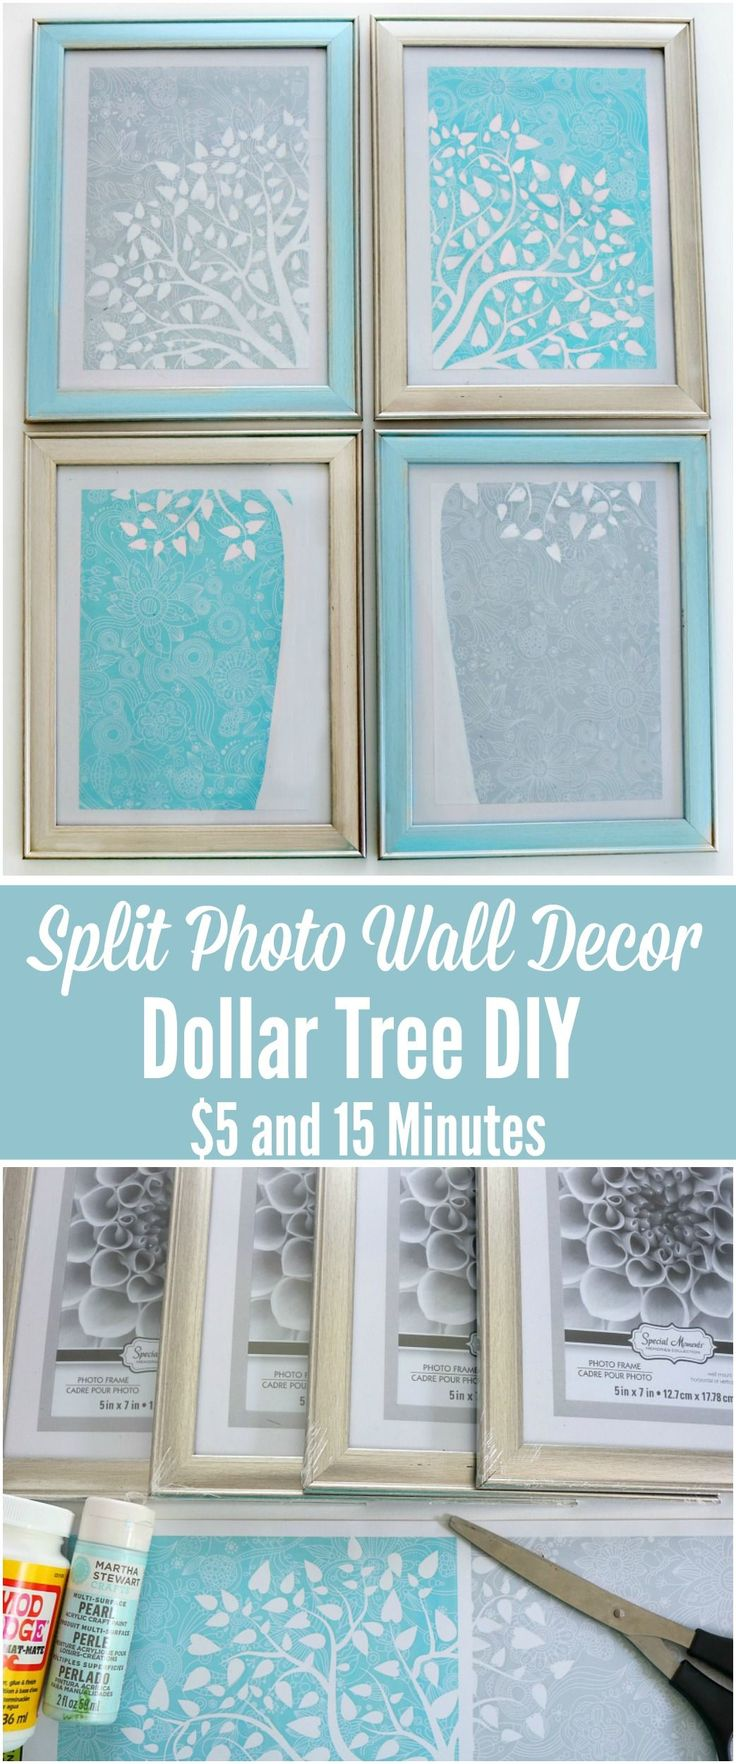 Everyone loves an easy inexpensive Dollar Tree DIY! Come see what we made today, you will be jumping in the car and heading to the store for the materials. Split photo /  Gallery Wall photo display home decor!